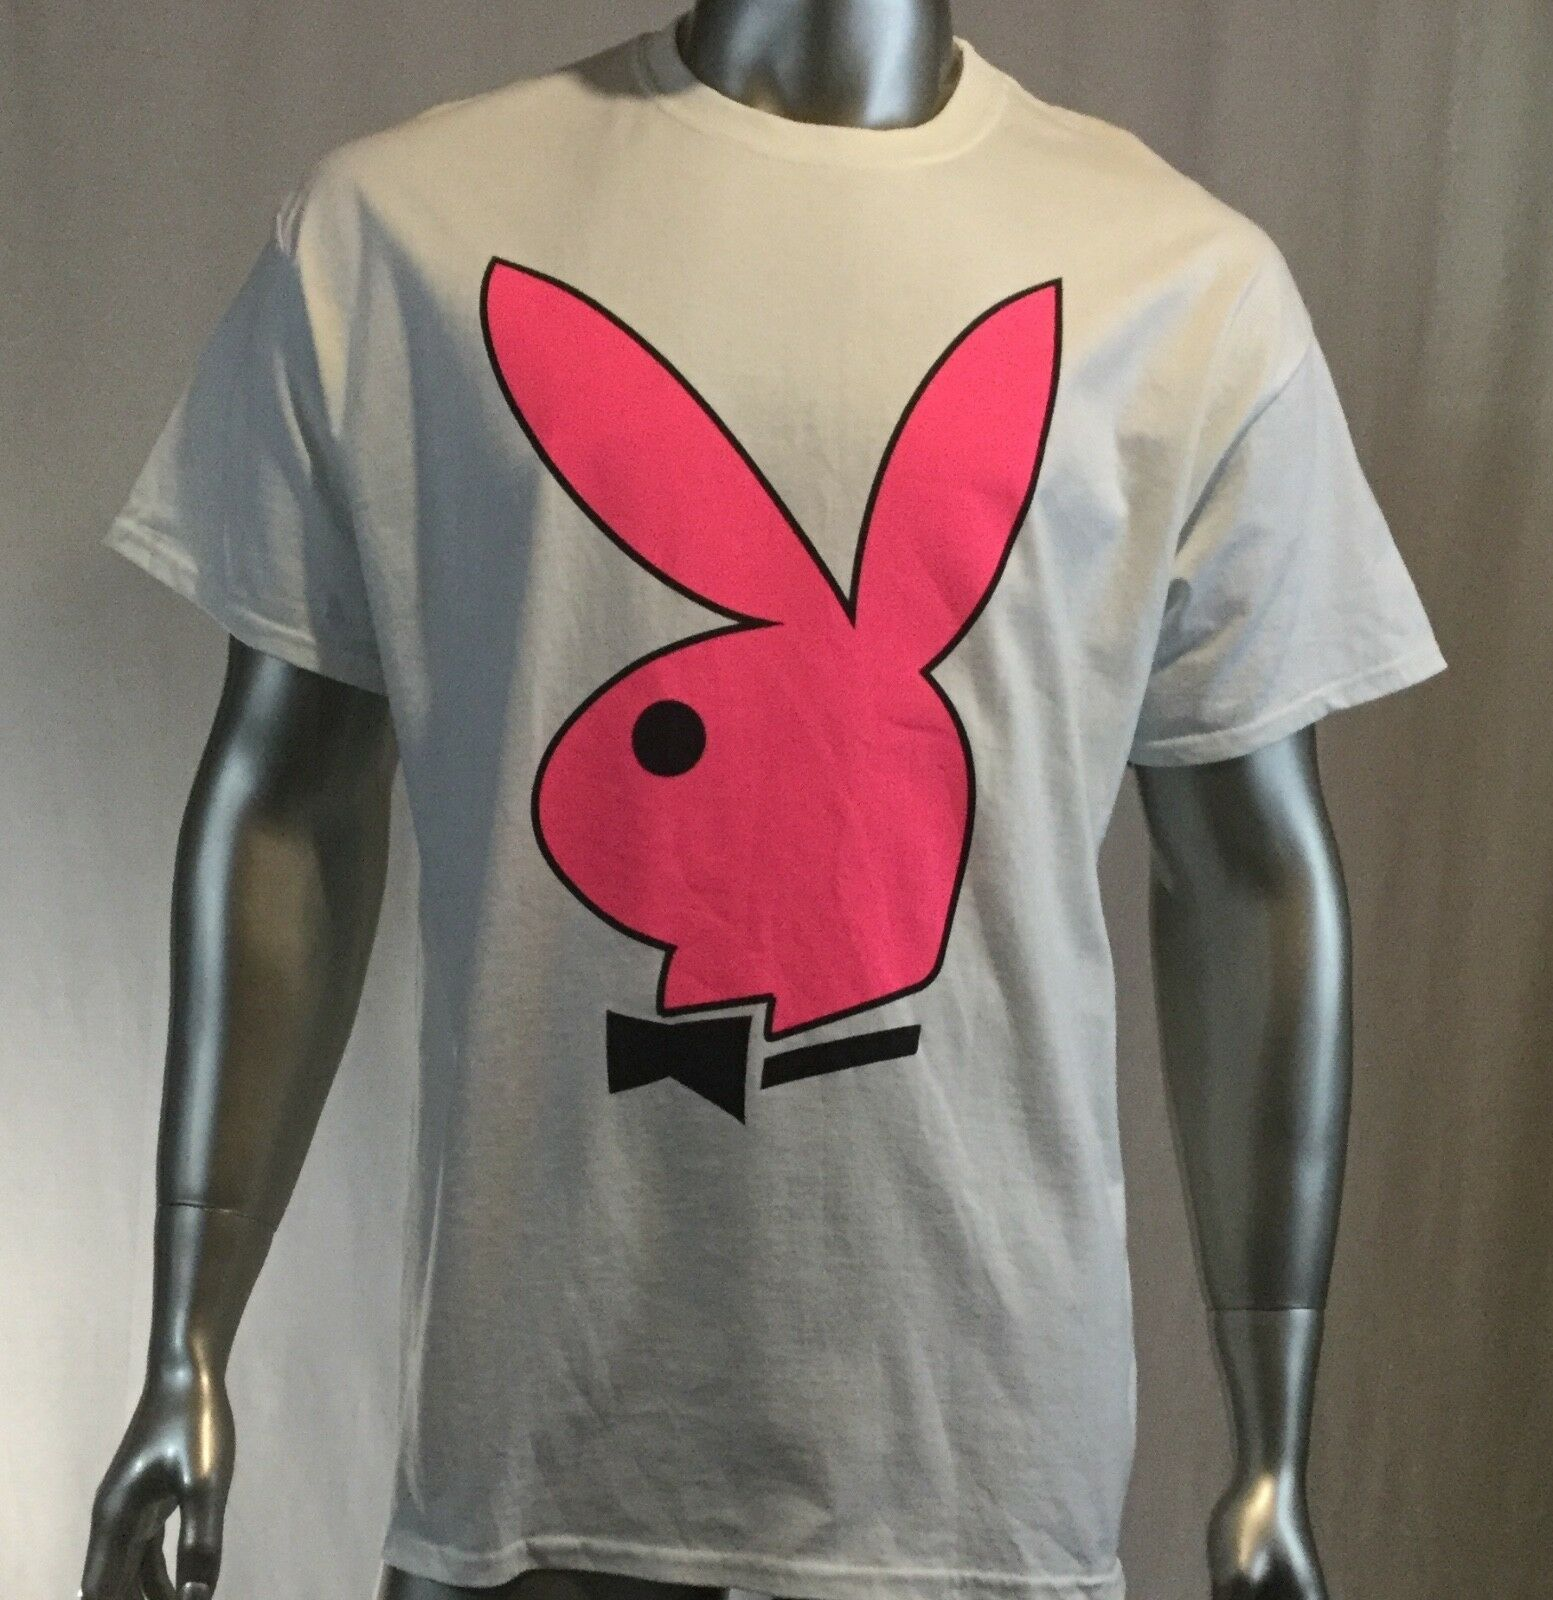 Play boy bunny I t shirt, I bunny spent the night with chippendales, Size XL, bianca rosa 72403e